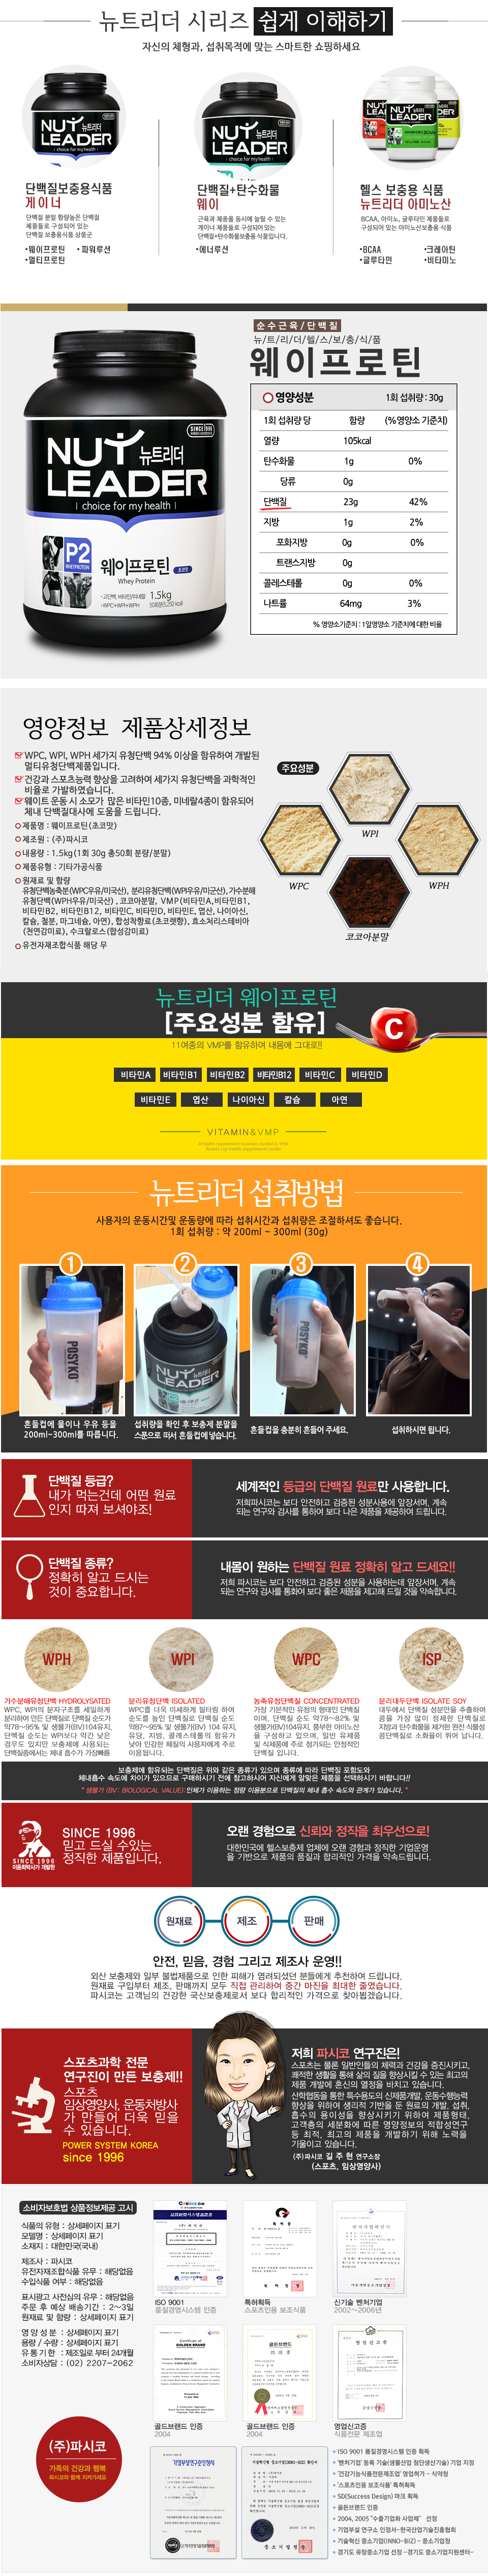 [ etc ] Whey Protein Chocolate Flavor 1.5Kg (Weight Training) Protein Supplement/Health Supplement/Shaker Included